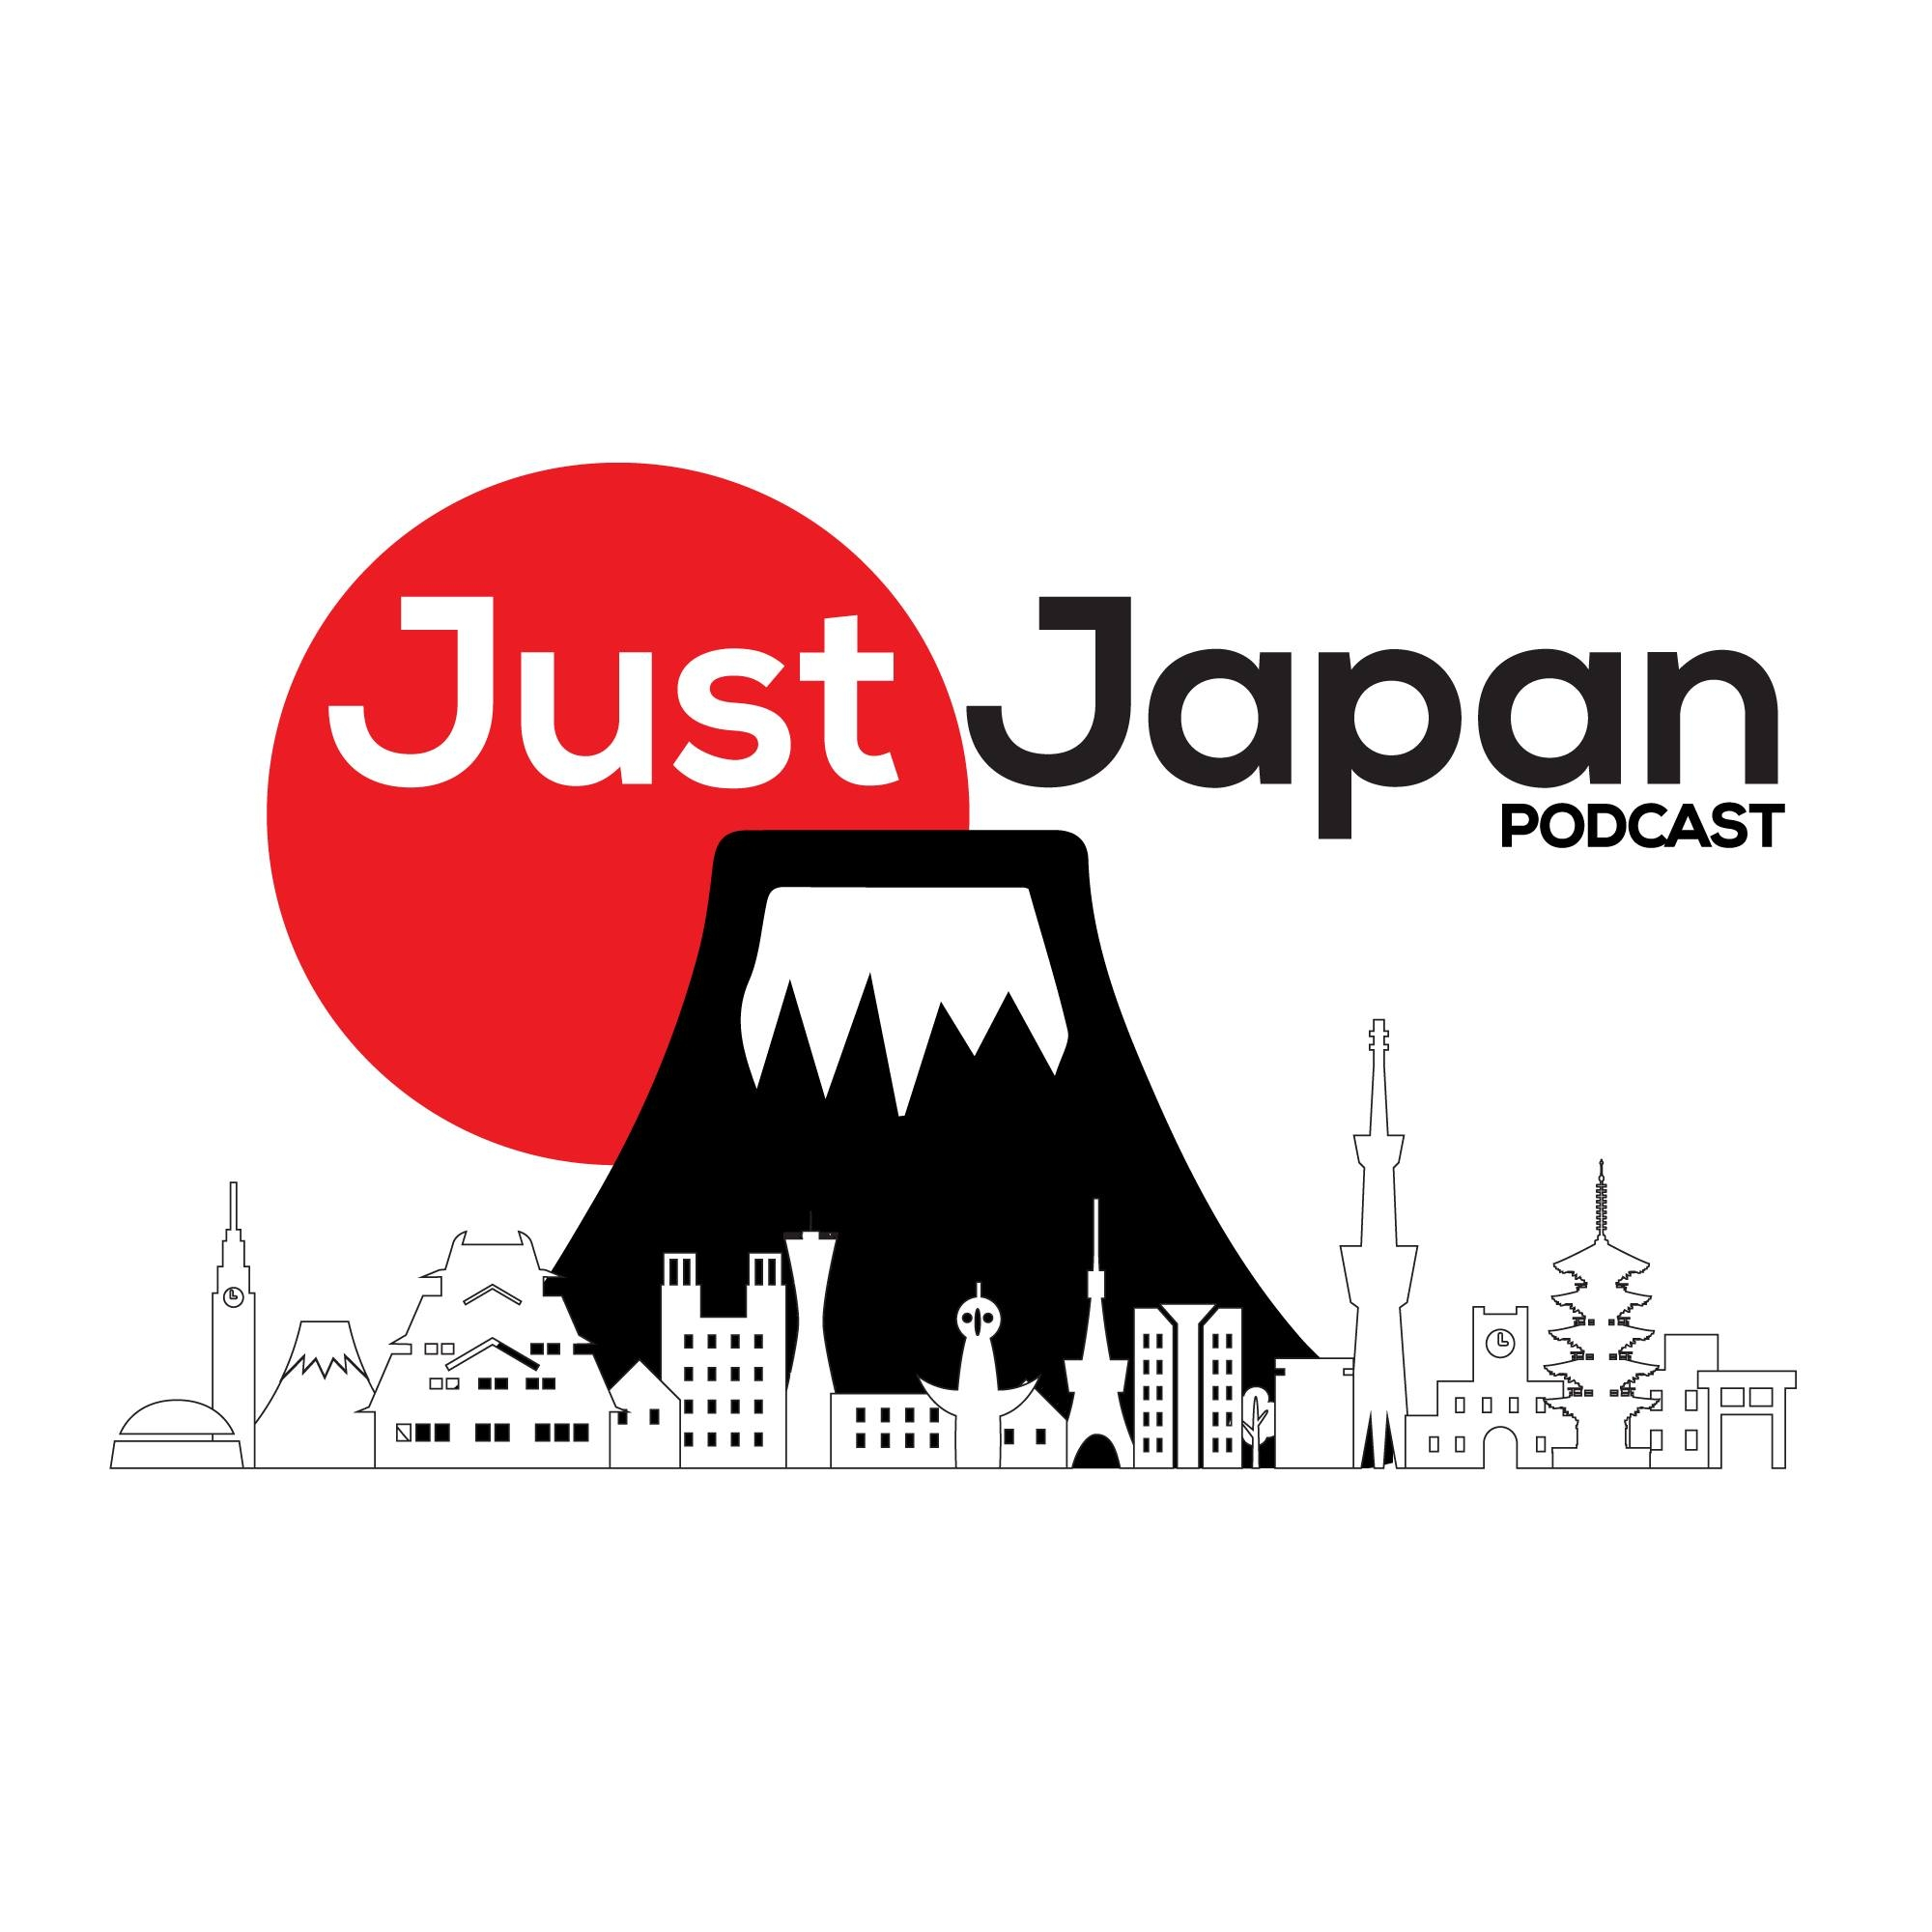 Just Japan Podcast 199: Japanese Whiskey with Brian Ashcraft show art